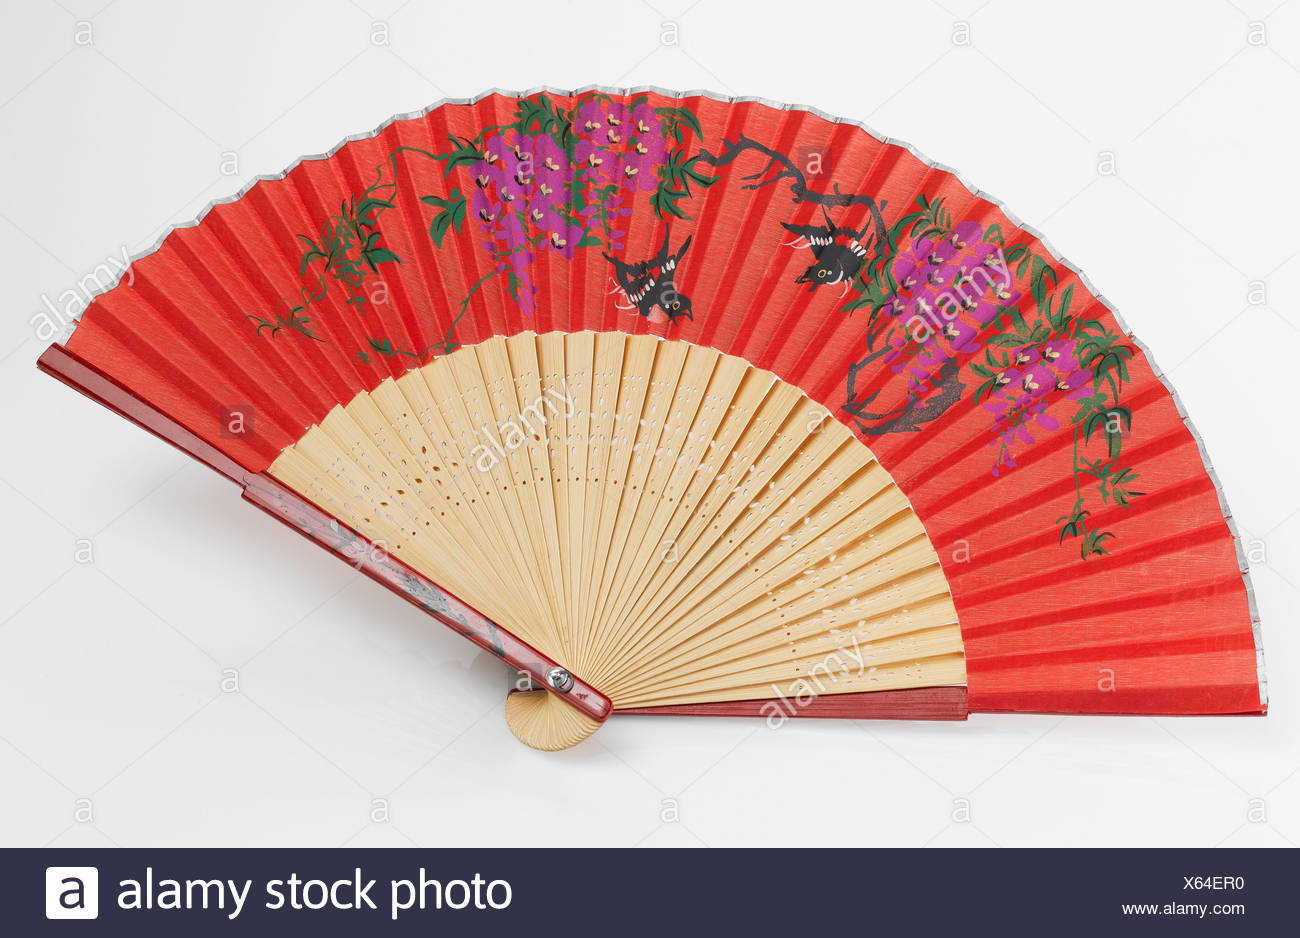 Chinese Motif Stock Photos & Chinese Motif Stock Images - Alamy